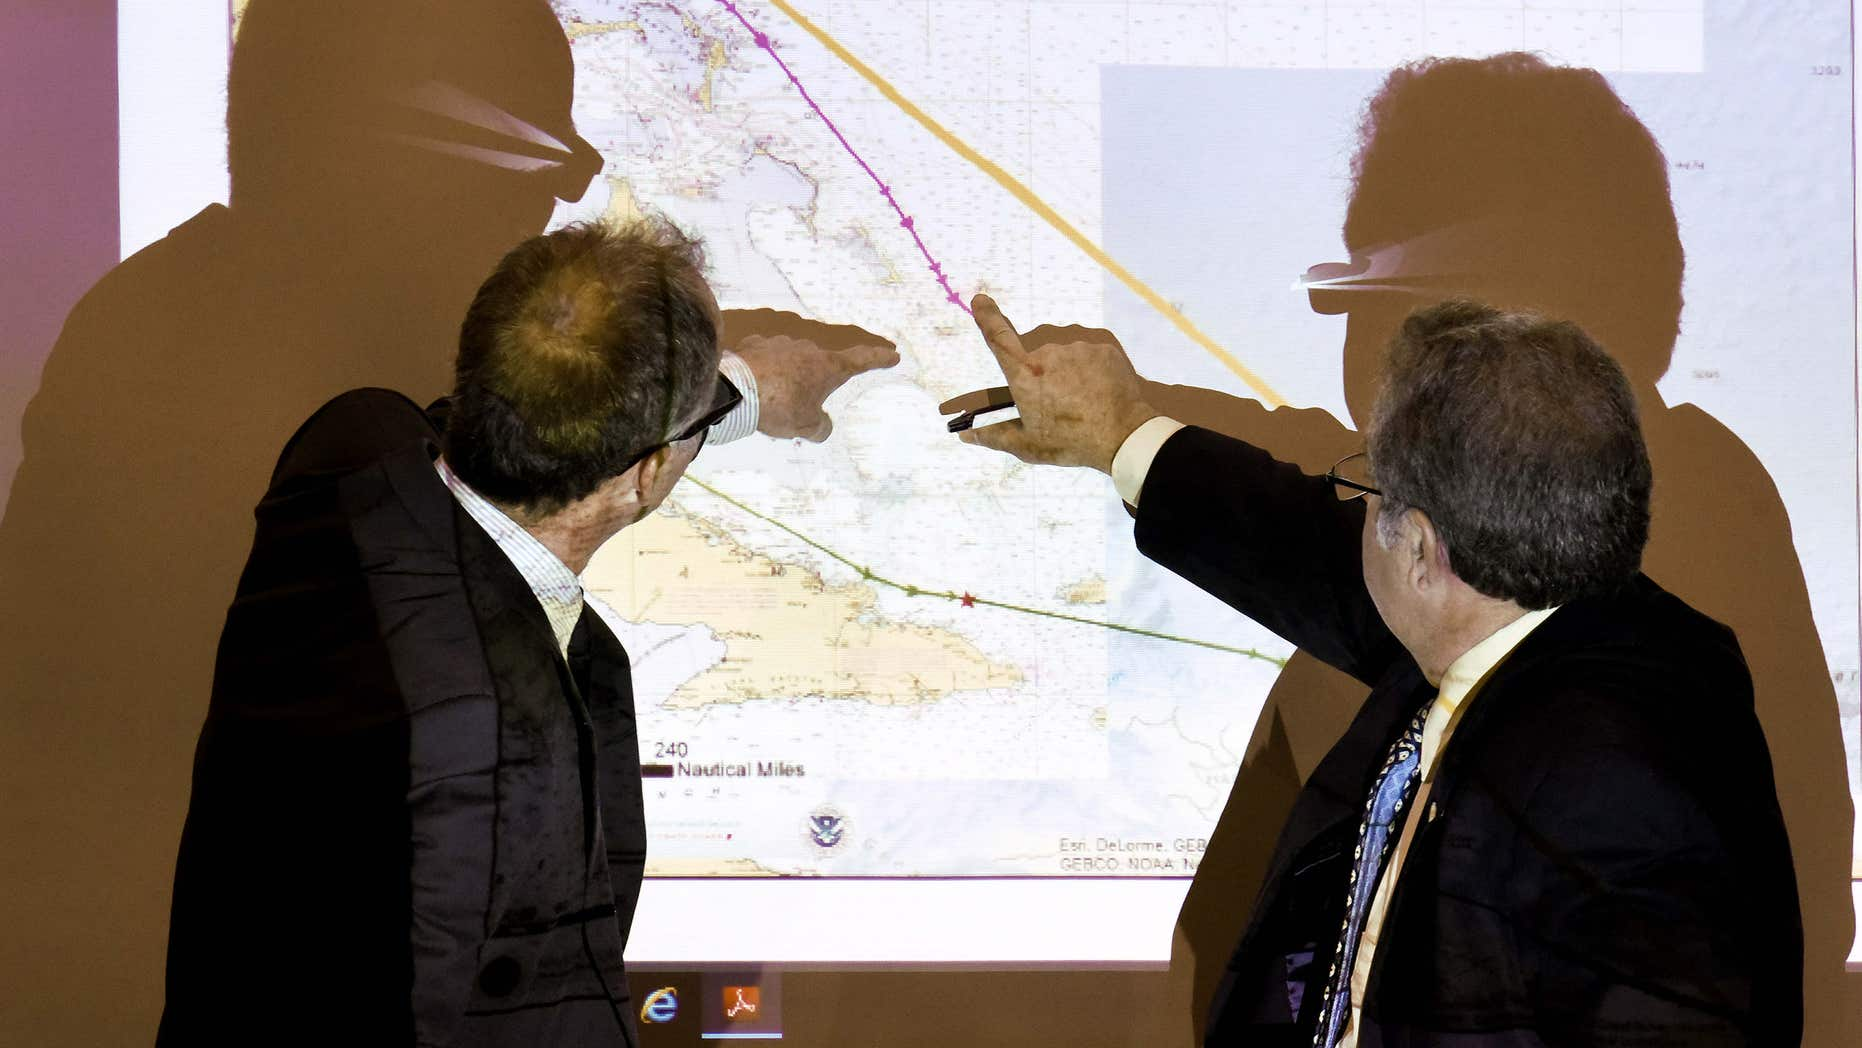 Baird, former second mate of the El Faro, left, and Mike Kucharski with the National Transportation Safety Board discuss route options available to the El Faro when dealing with the approaching hurricane during a hearing investigating the ship's sinking last October, Thursday, Feb. 18, 2016, in Jacksonville, Fla.